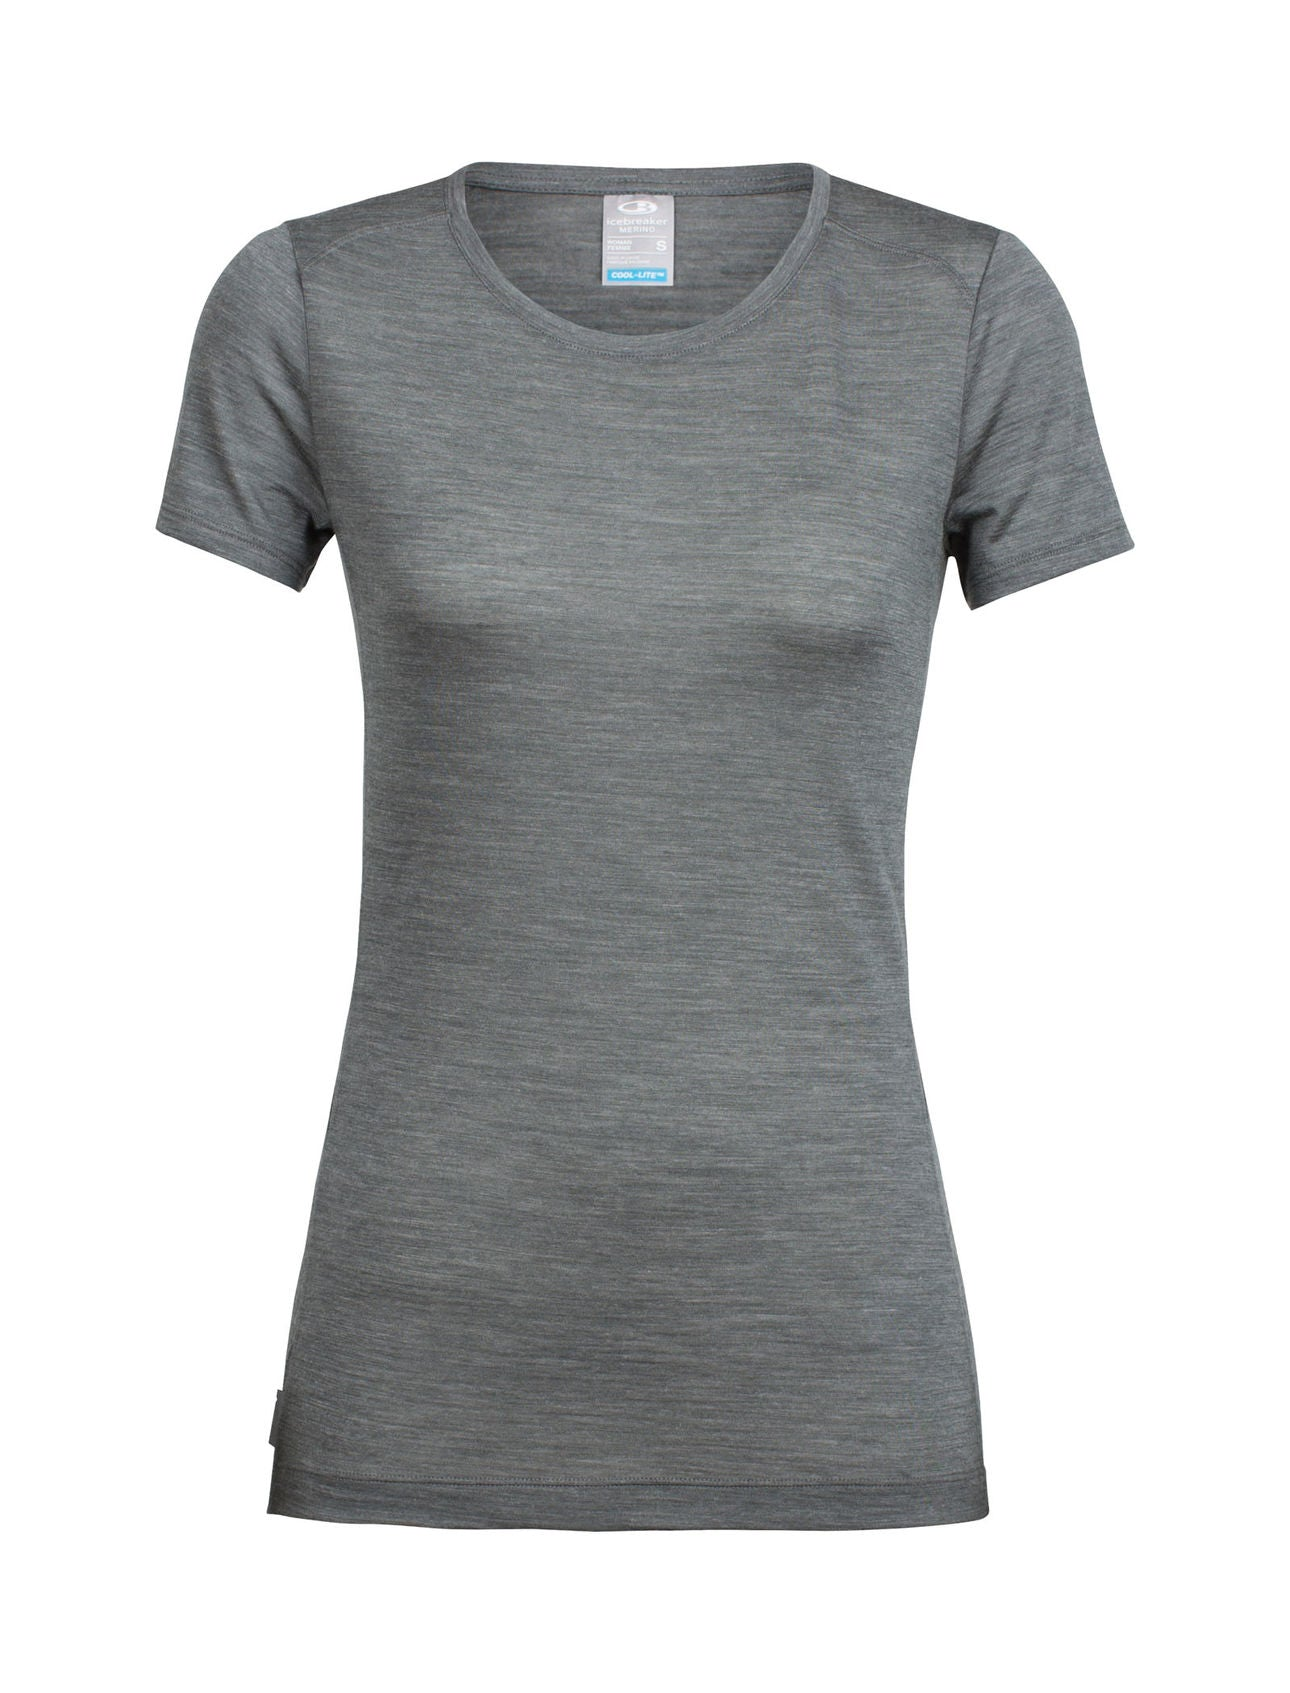 Icebreaker Sphere SS Low Crewe Tee for Ladies in Metal Heather